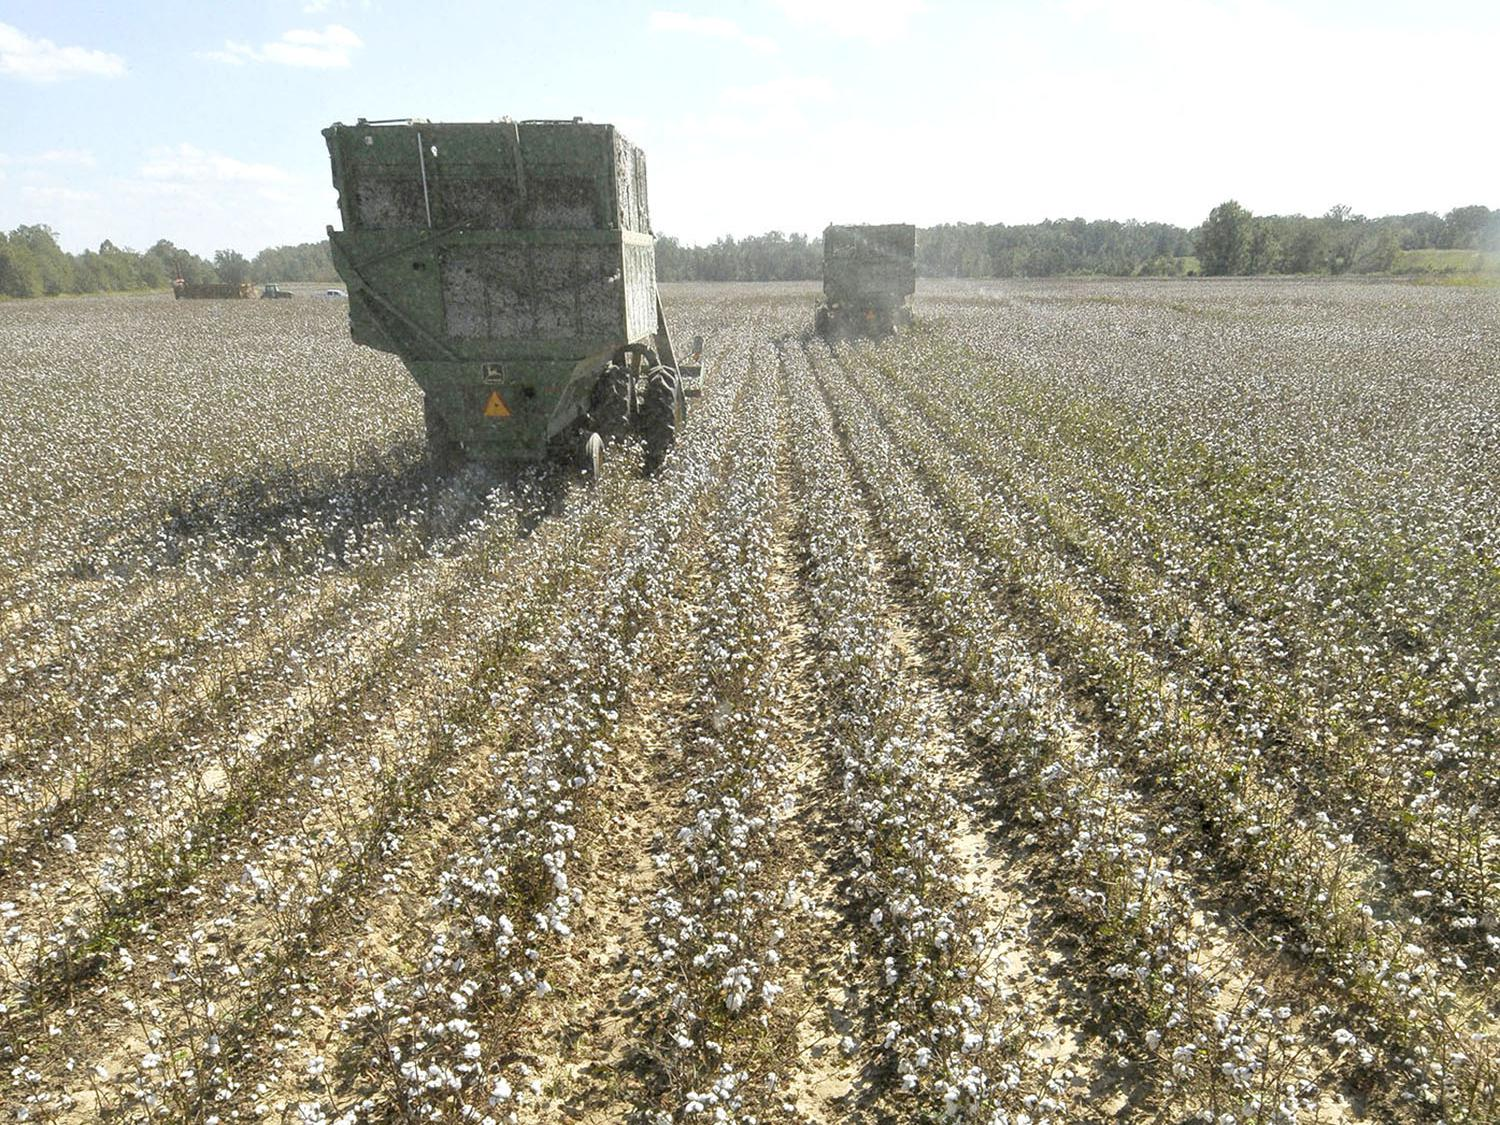 Although rain halted fieldwork for more than a week in early October, Mississippi's cotton harvest is well underway and yields are high. This machine was picking cotton on Topashaw Farms in Calhoun County, Sept. 28, 2011. (File photo by MSU Ag Communications/Scott Corey)